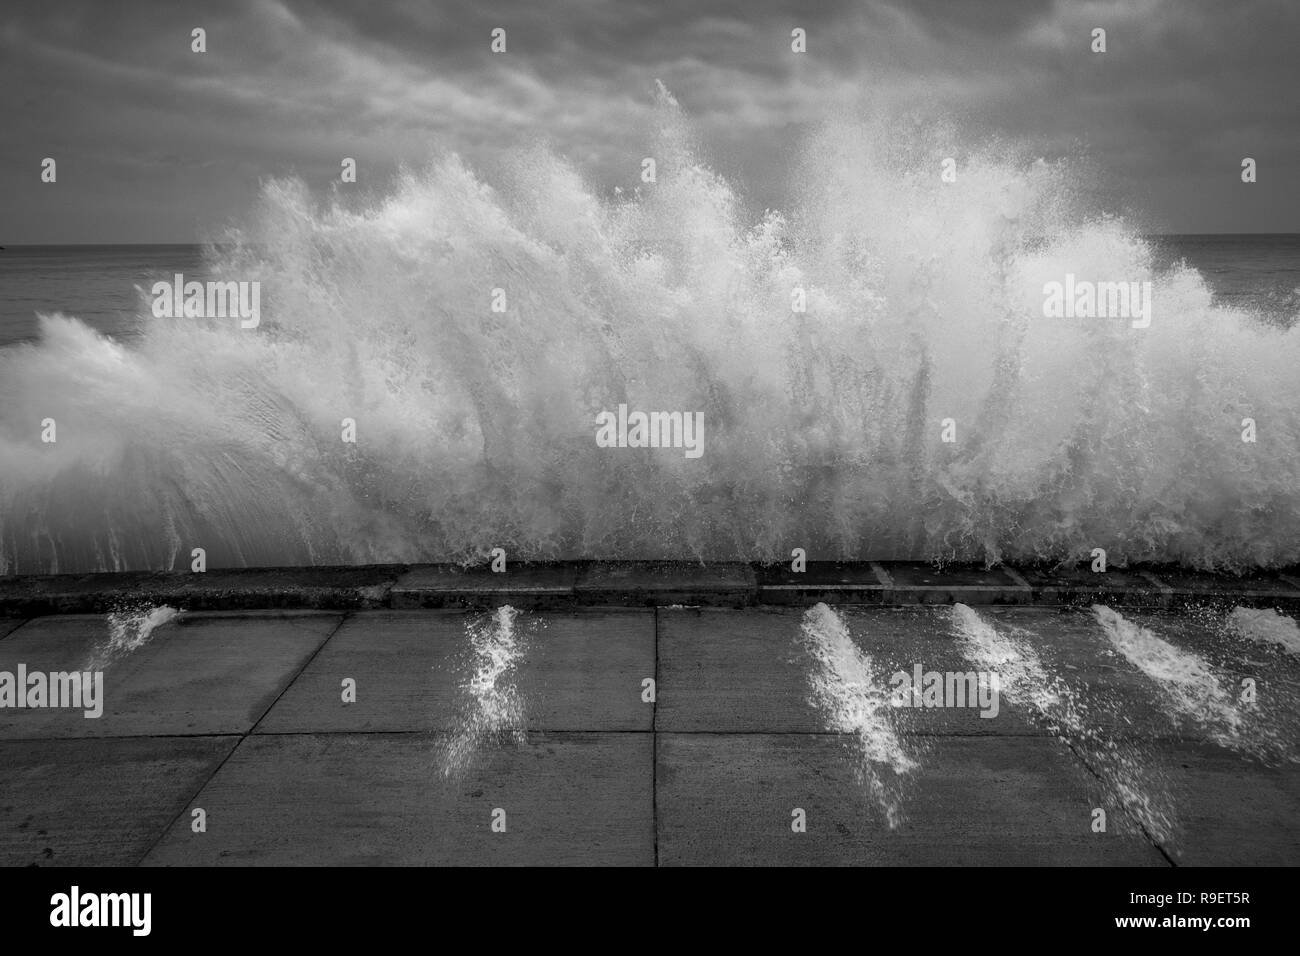 Scarborough seafront: Dramatic wave crashing against the sea wall in black and white - Stock Image